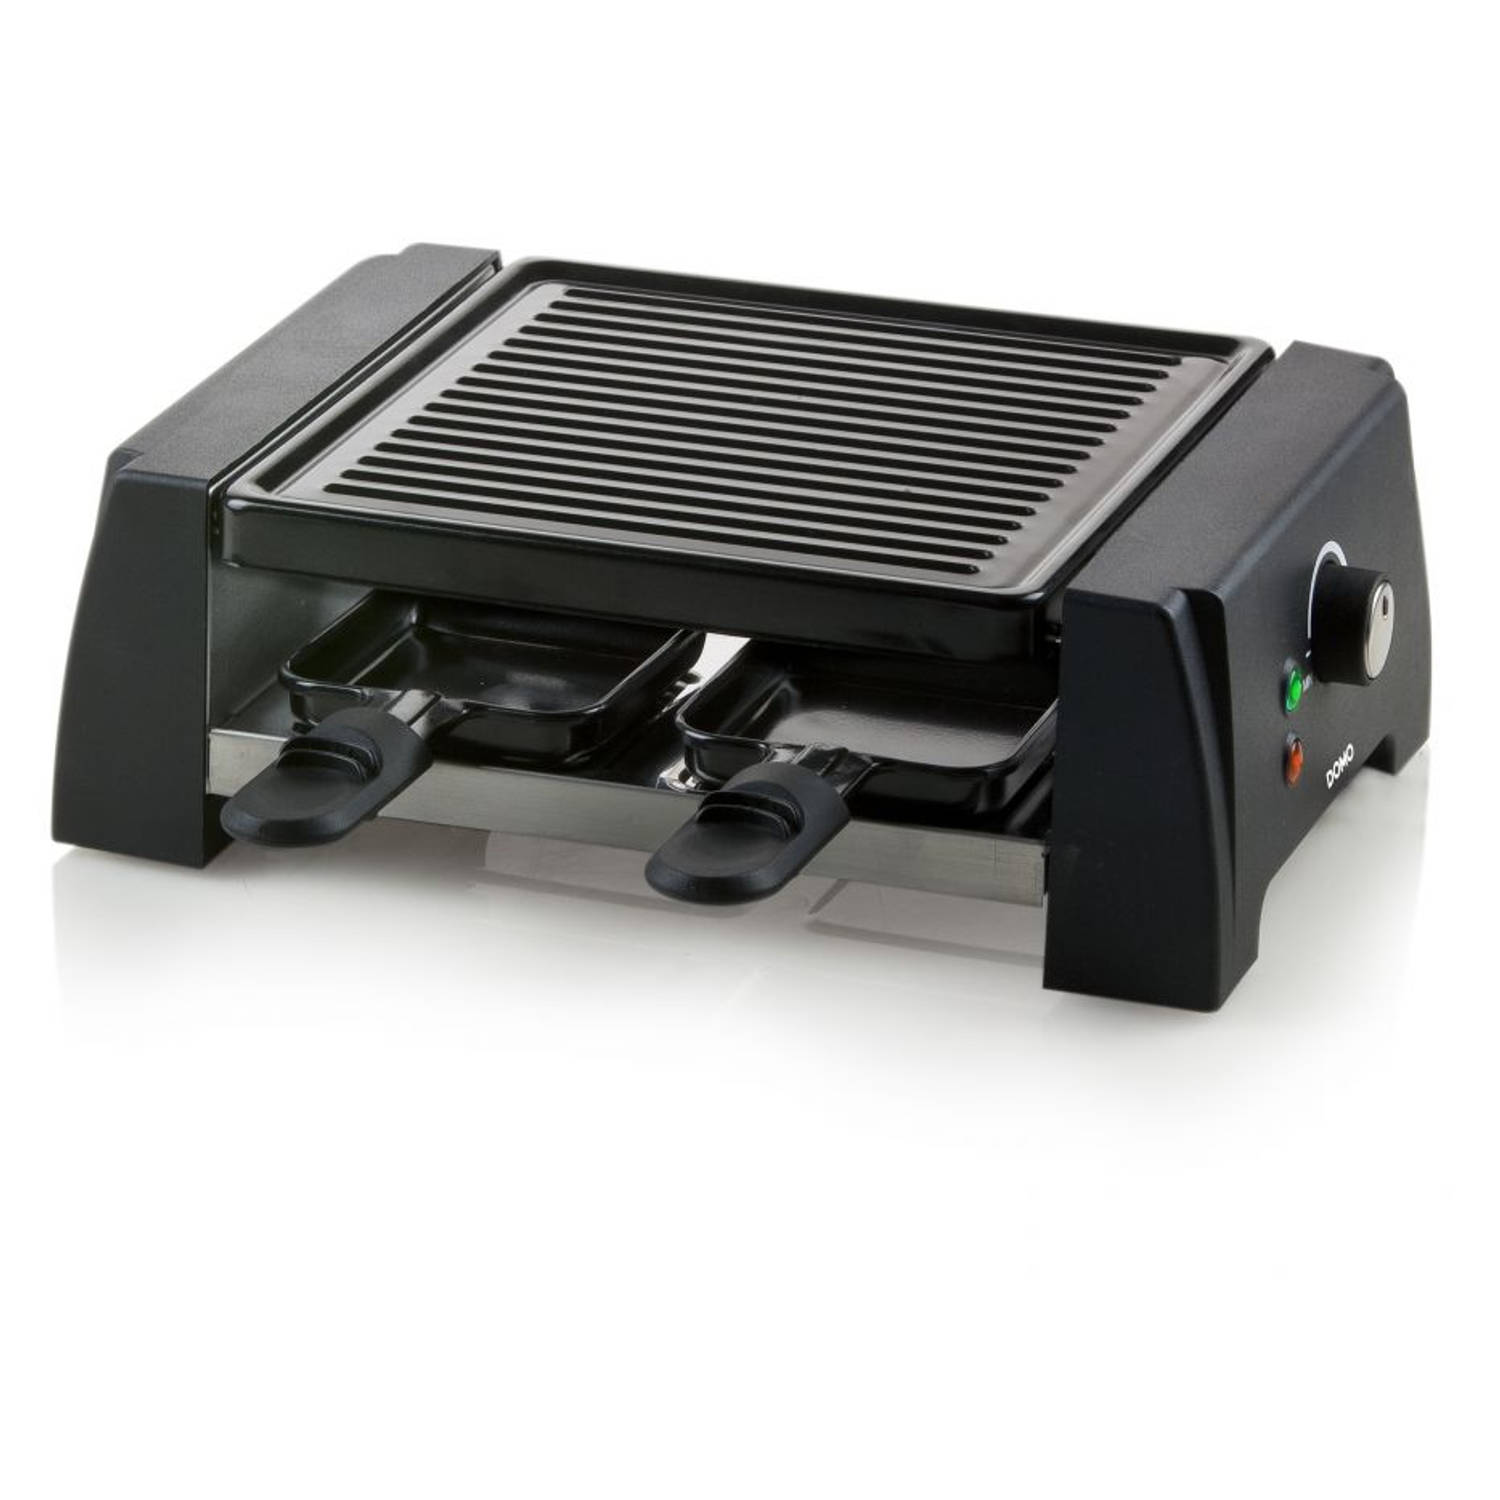 Domo do9187g raclette steengrill